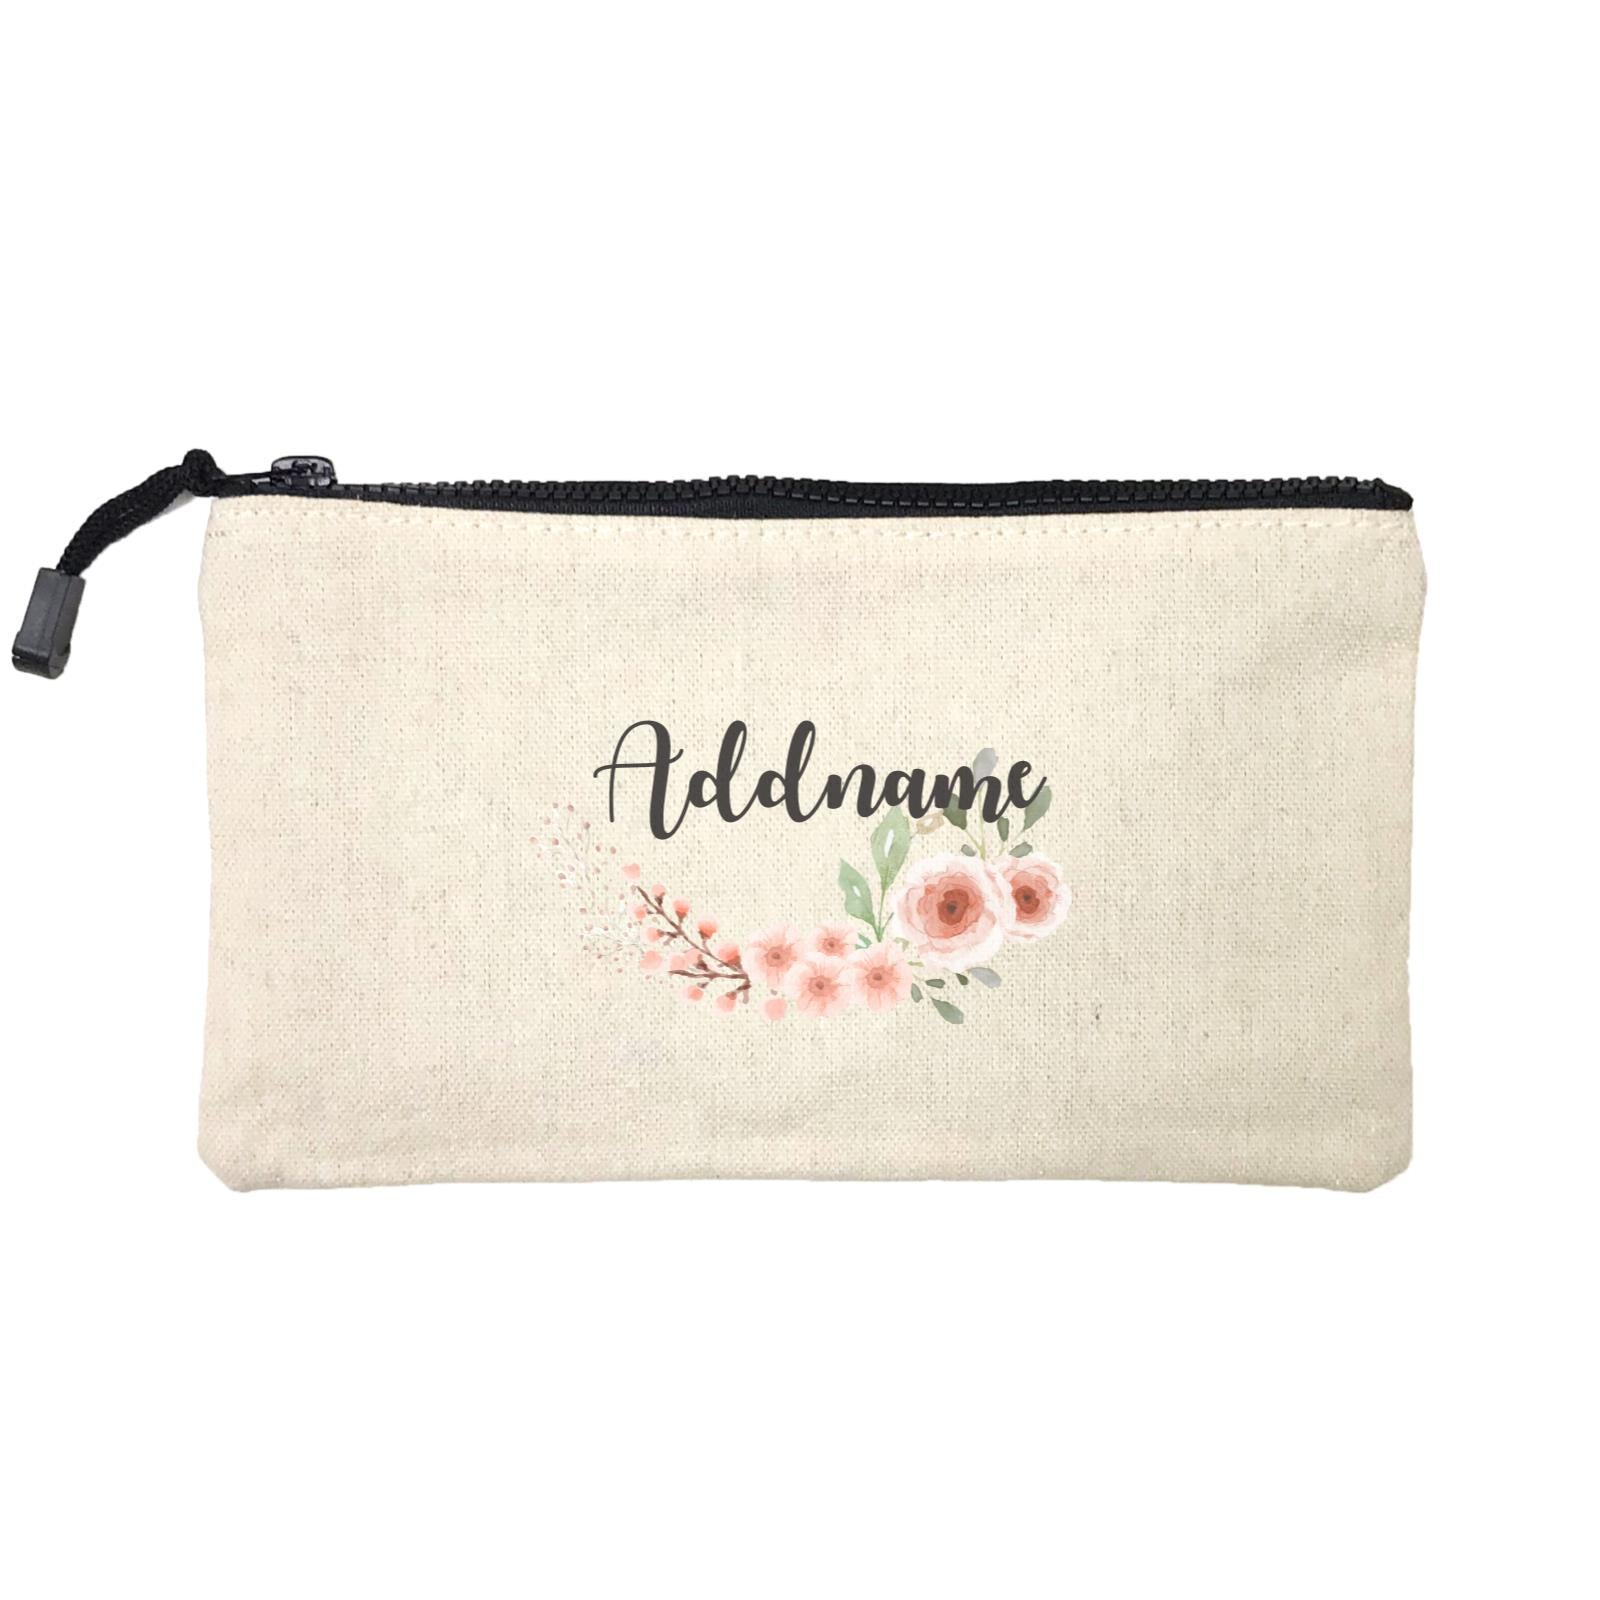 Bridesmaid Floral Sweet 2 Watercolour Flowers Addname Mini Accessories Stationery Pouch